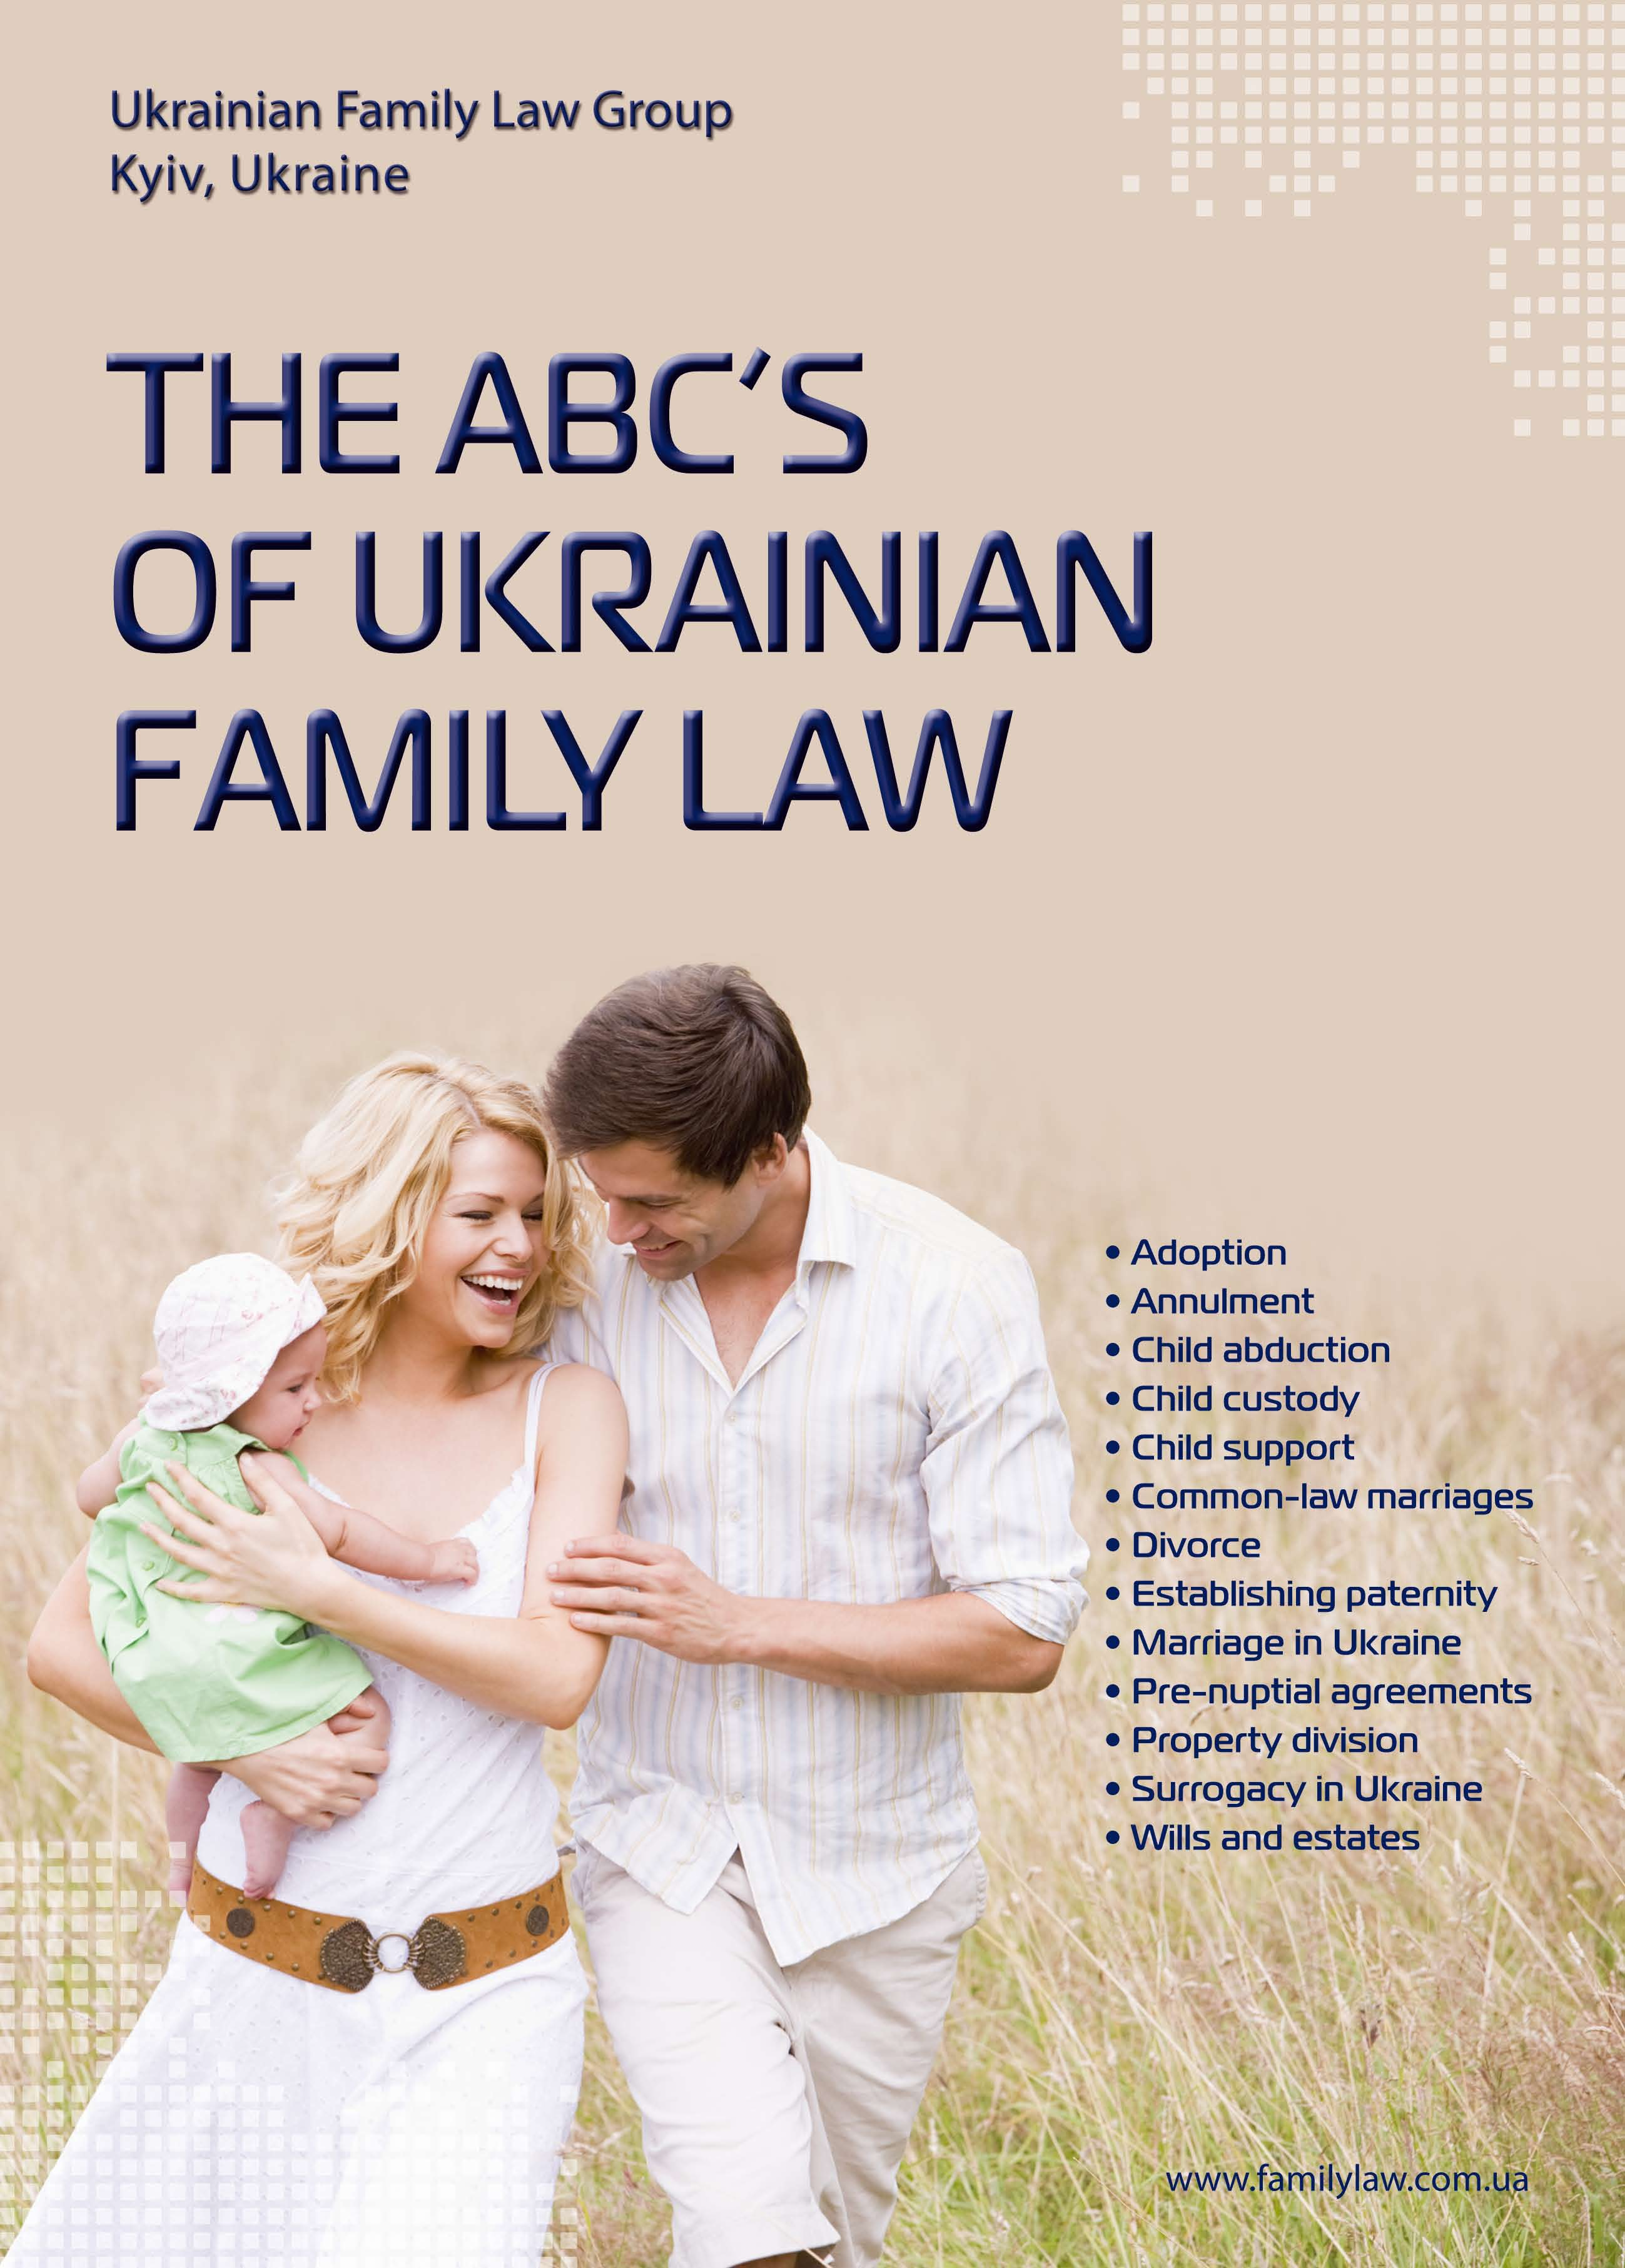 Family Law Group Brochure 4 pravka Страница 01